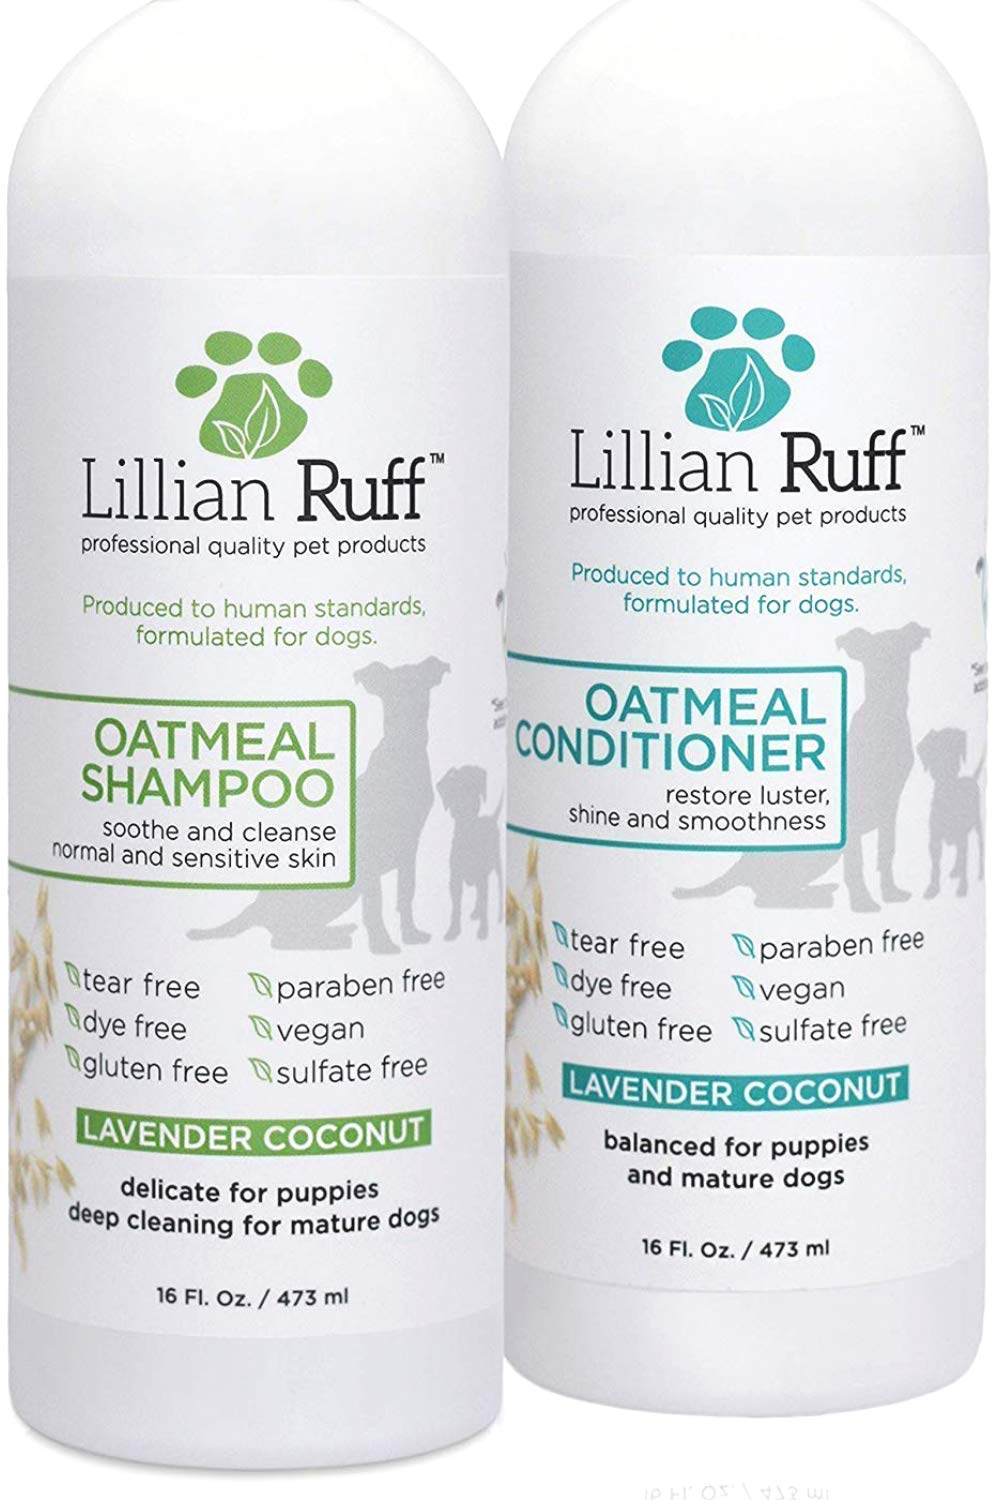 Lillian Ruff Dog Oatmeal Shampoo and Conditioner Set - Safe for Cats - Lavender Coconut Scent for Itchy Dry Skin with Aloe- Deodorize and Soothe - Gentle Cleanser for Normal to Sensitive Skin (16oz.) by Lillian Ruff